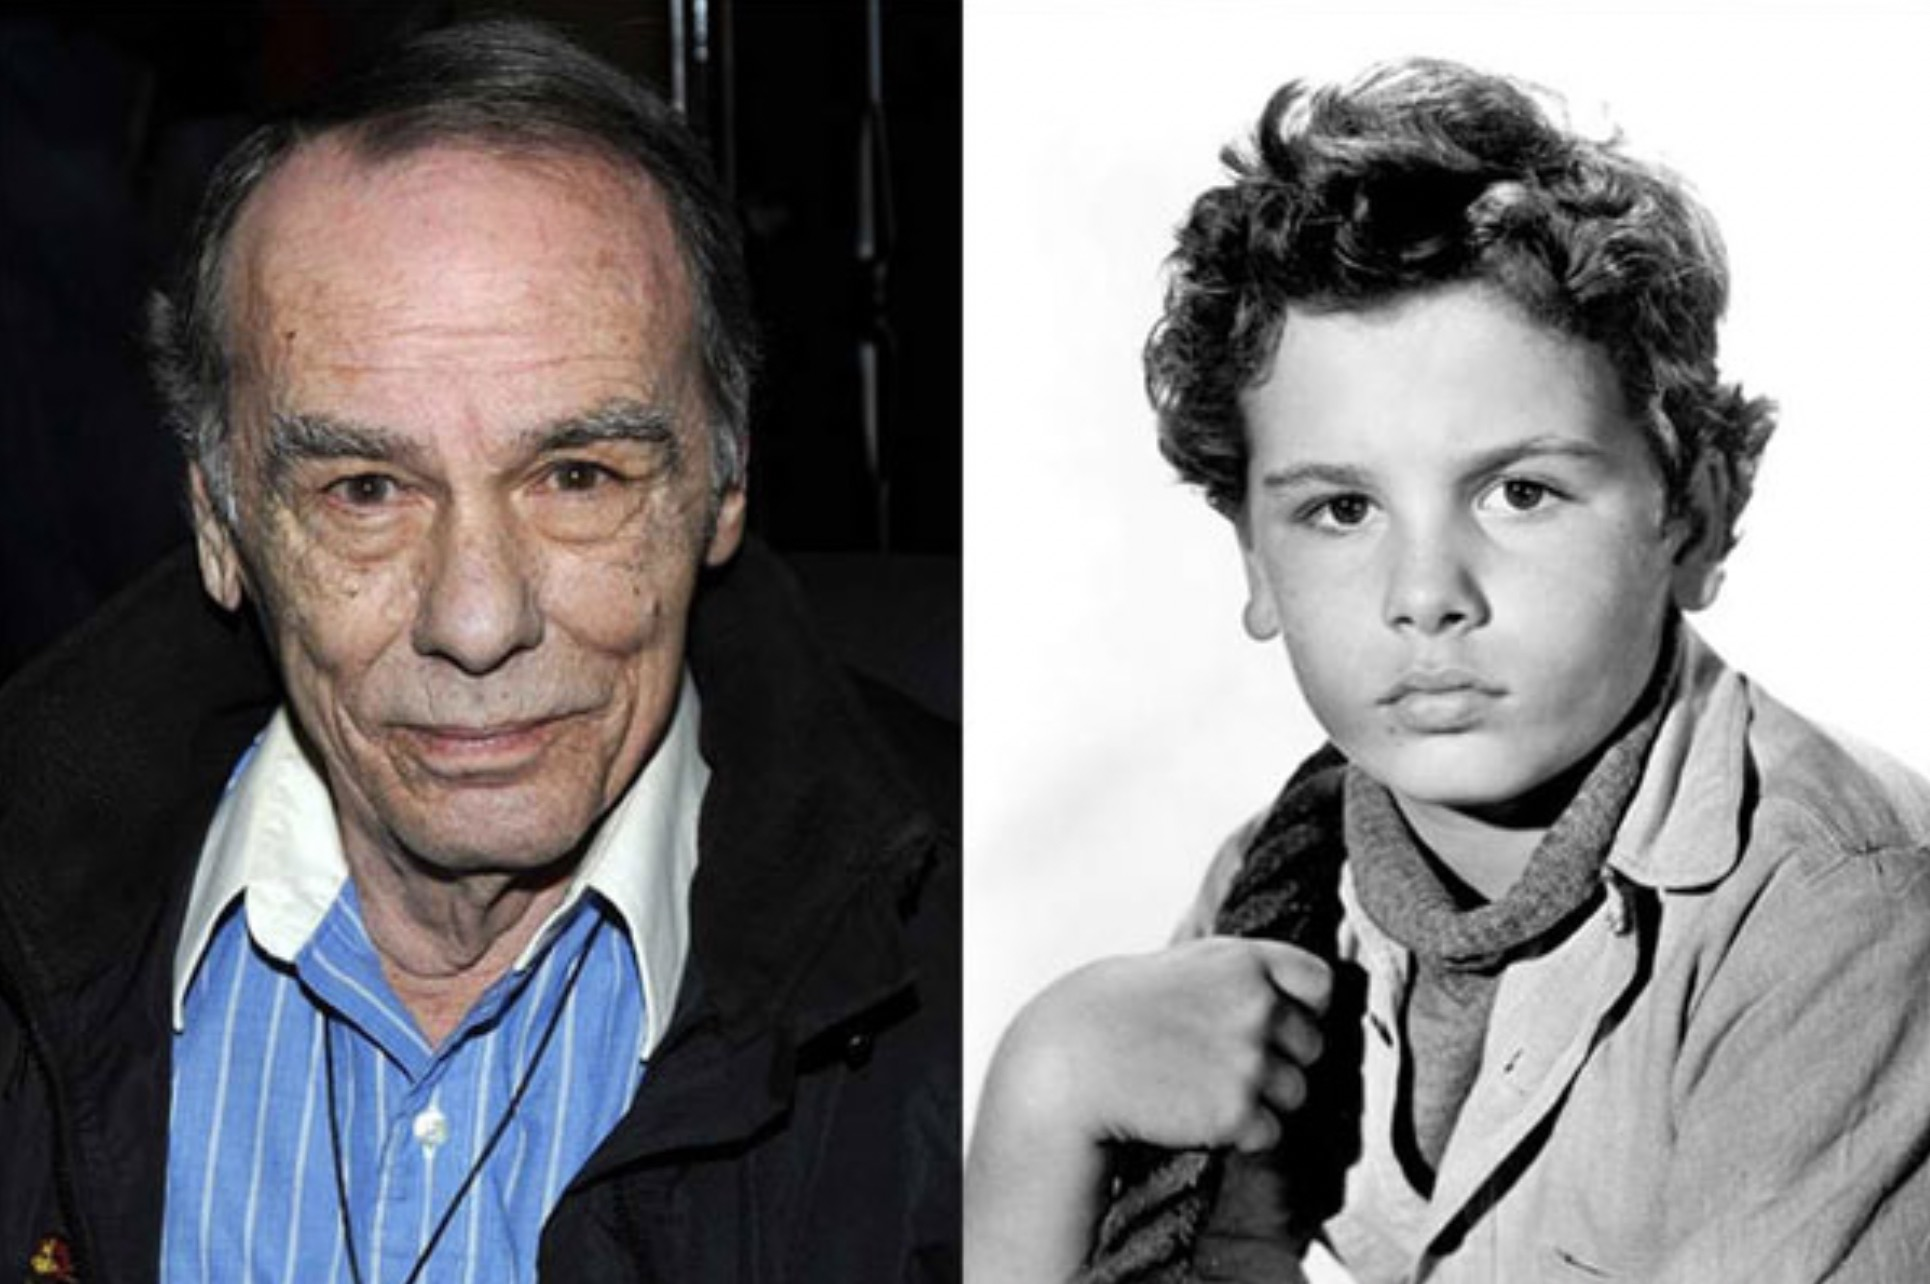 DEAN STOCKWELL 82 YEARS OLD